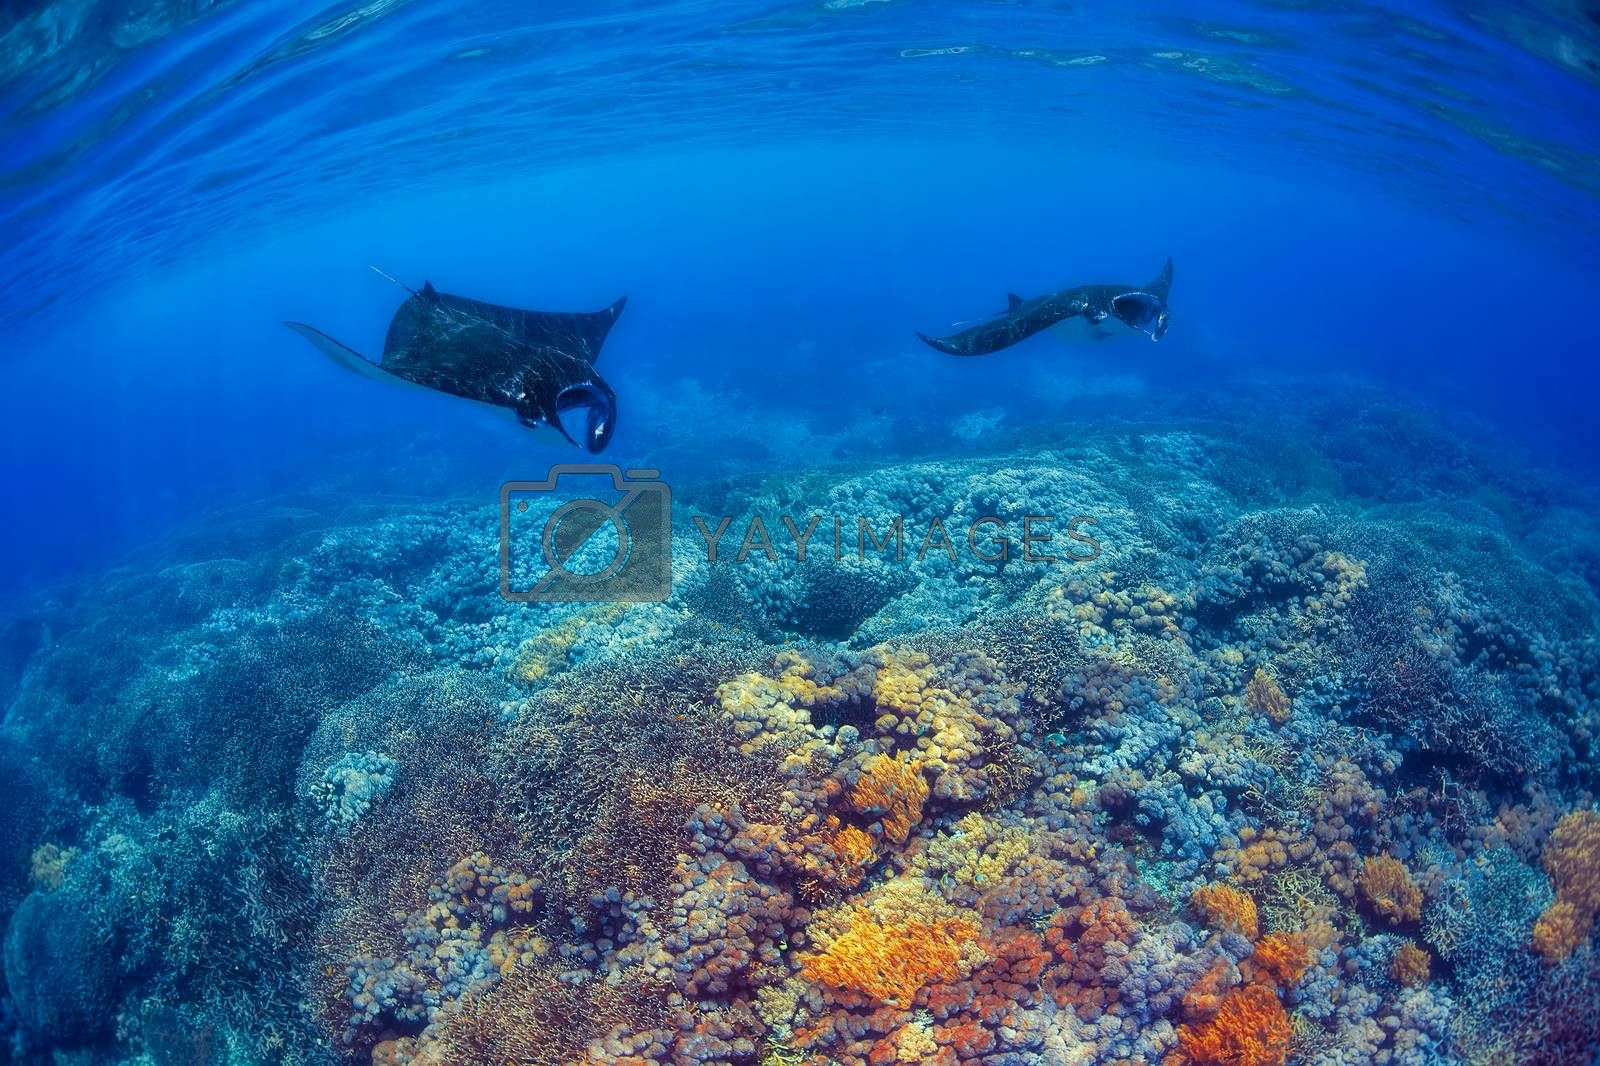 Manta rays filter feeding above a coral reef in the blue Komodo waters